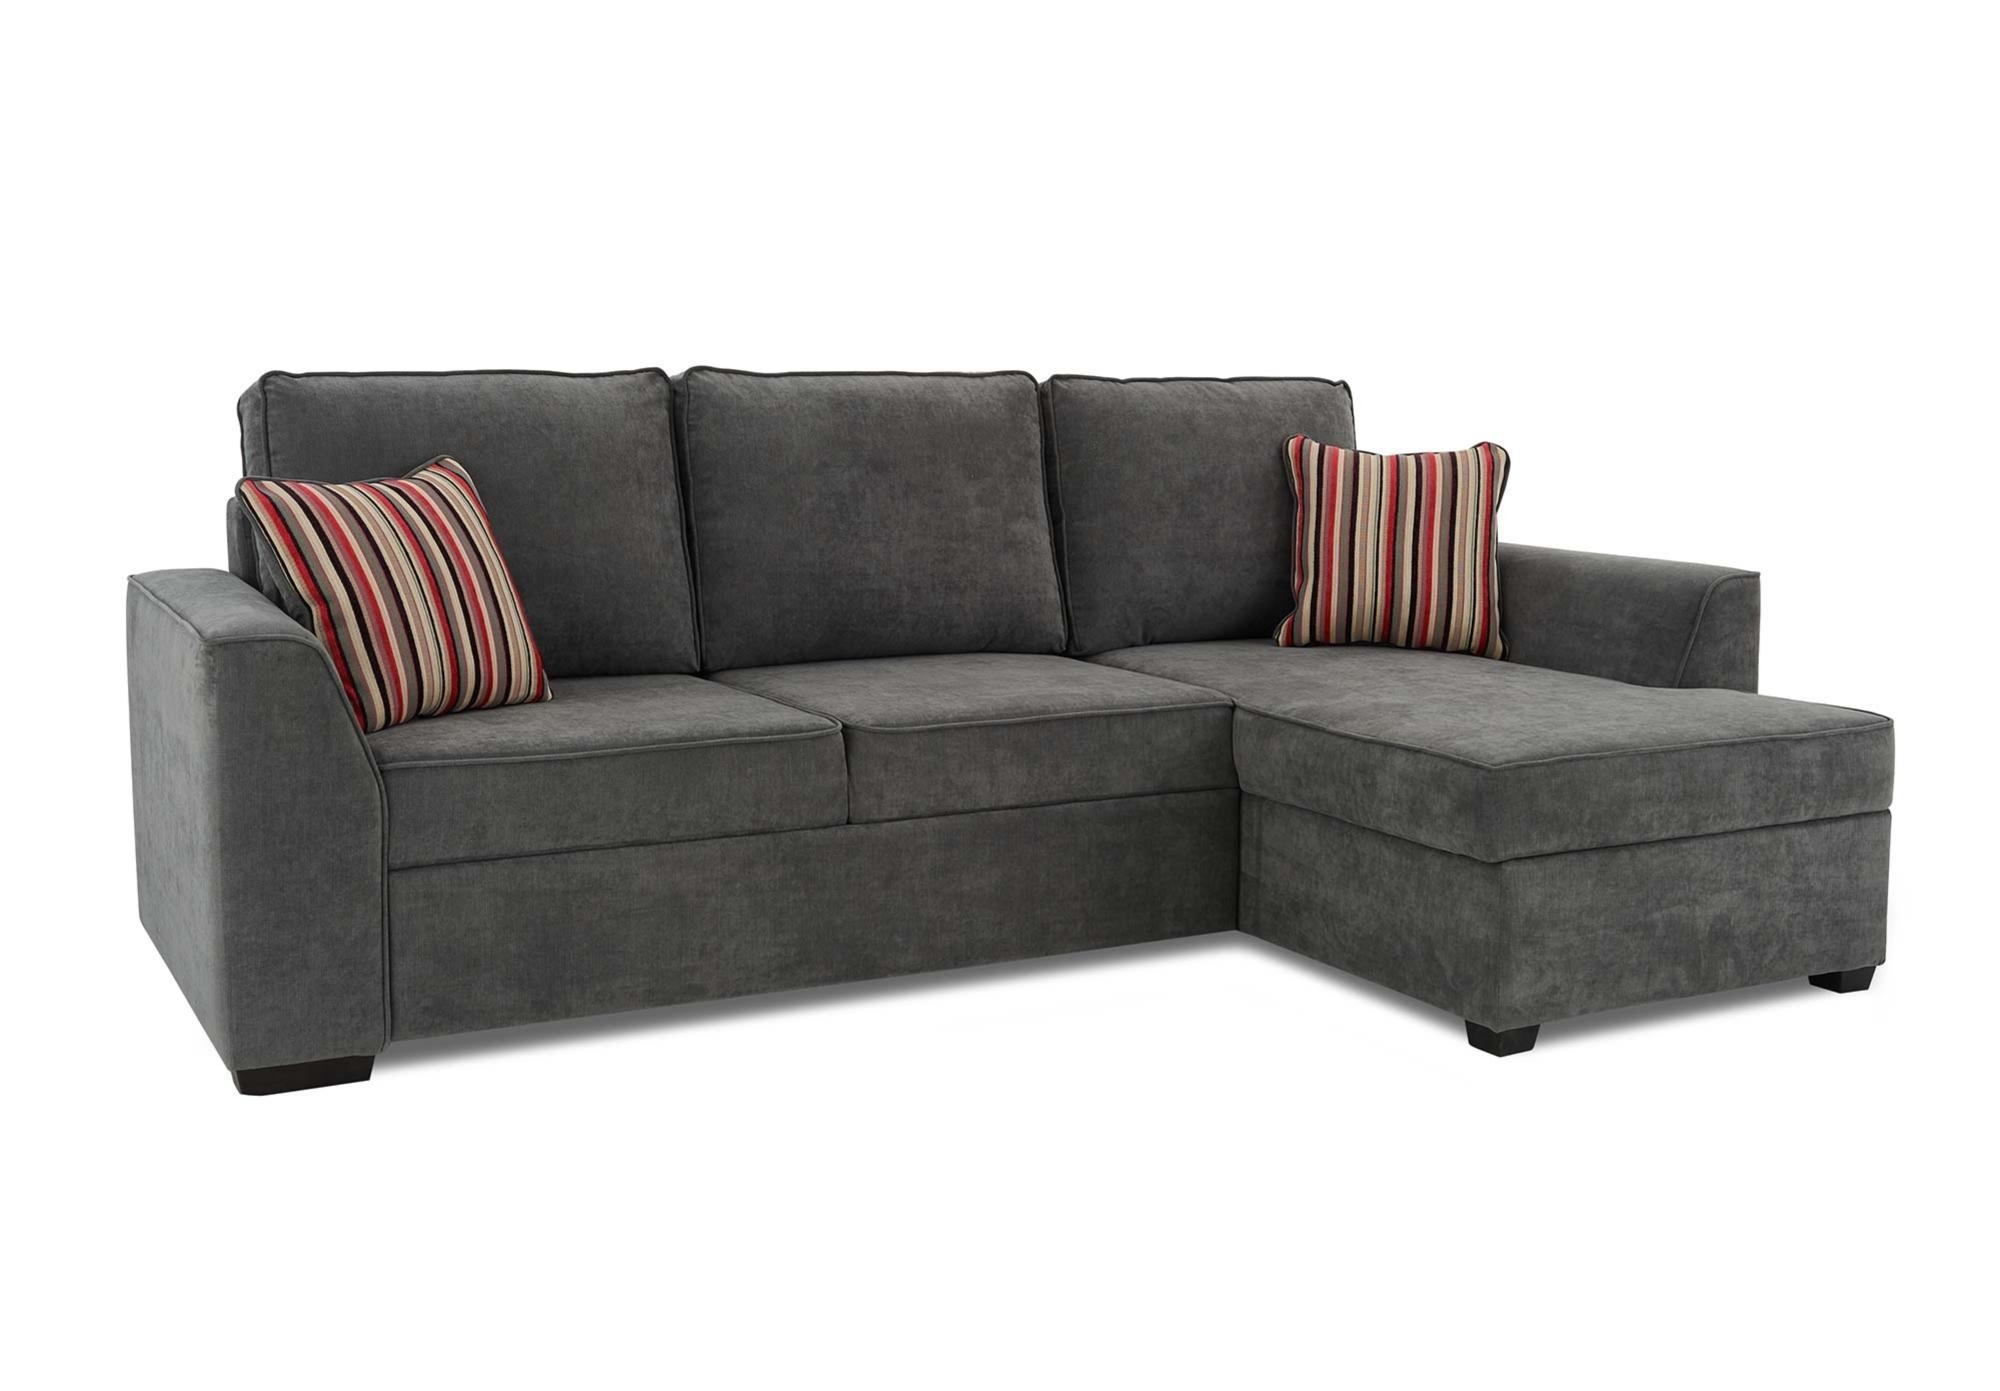 Nice Sofa Bed With Storage Chaise 405890 Sofa | Ciov inside Sofa Beds With Storage Chaise